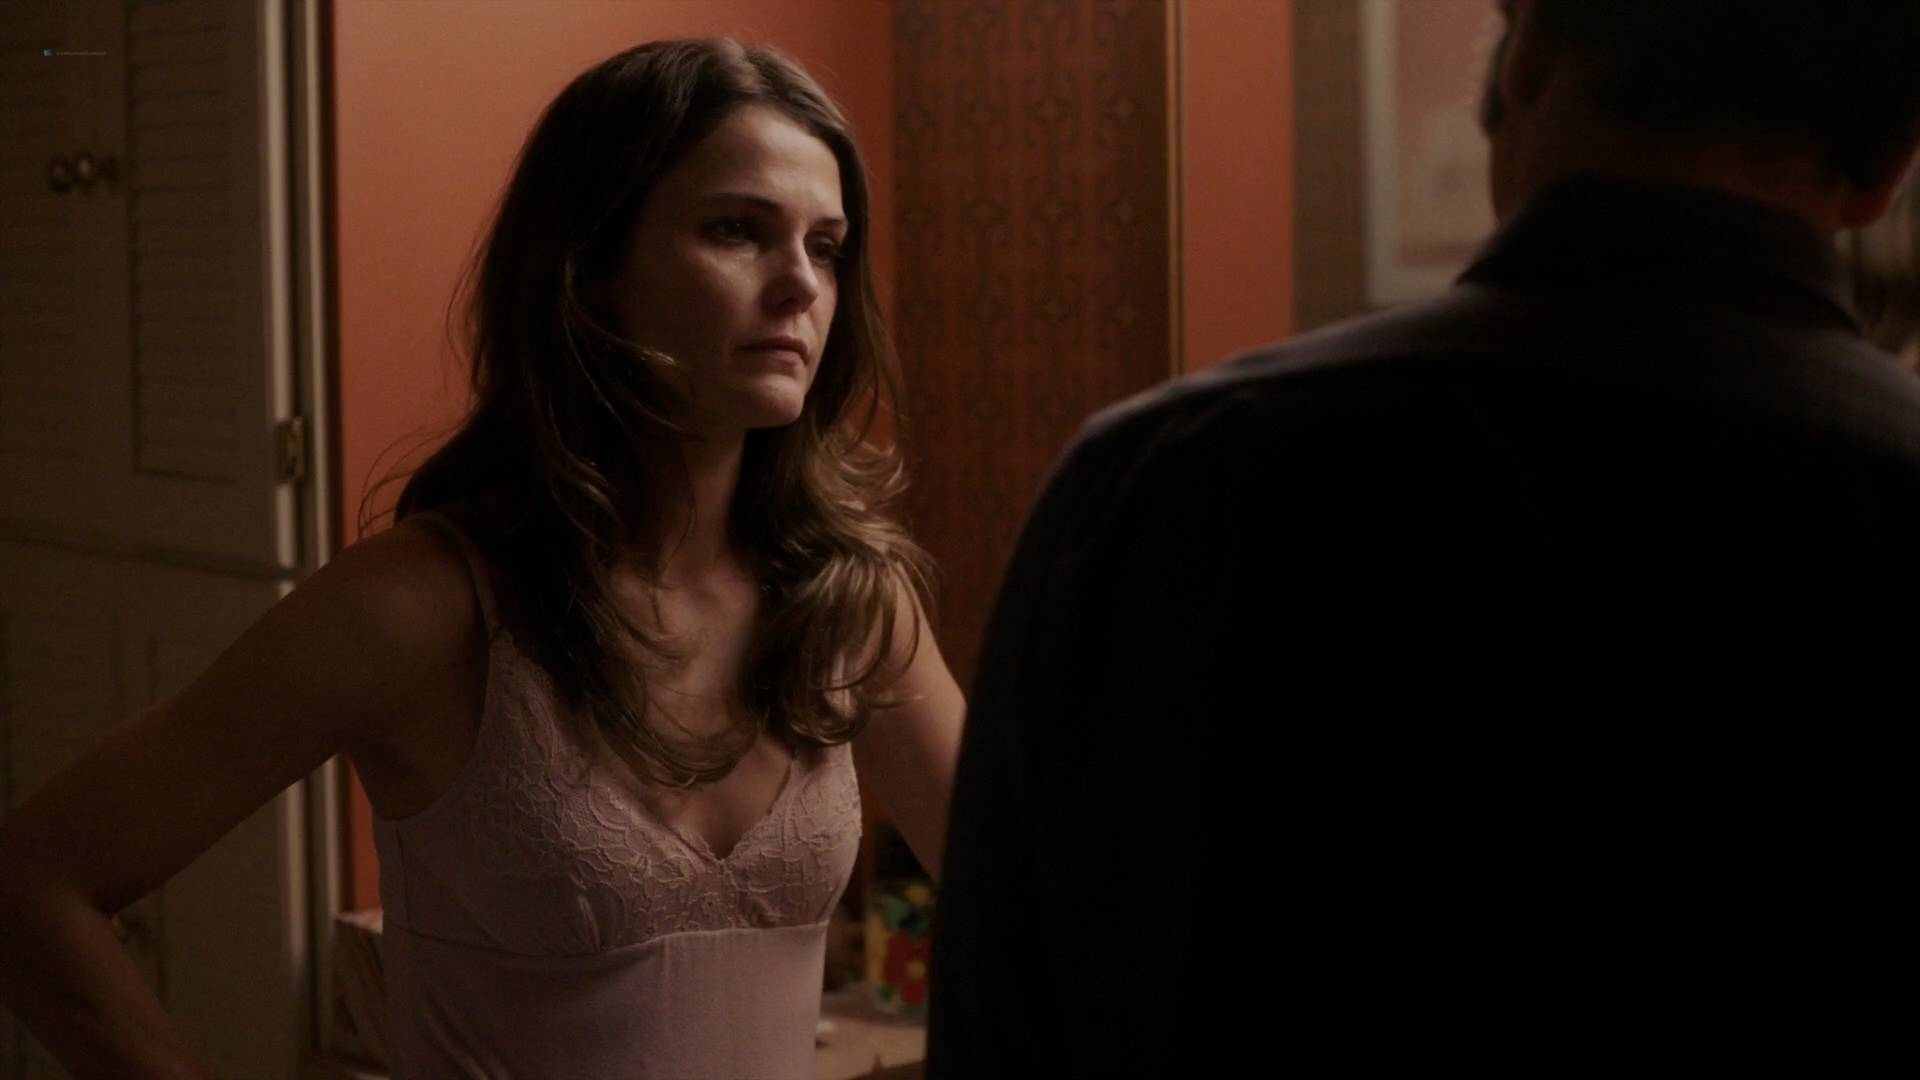 Keri Russell nude butt in the shower -The Americans (2017) s5e2 HD 1080p (4)